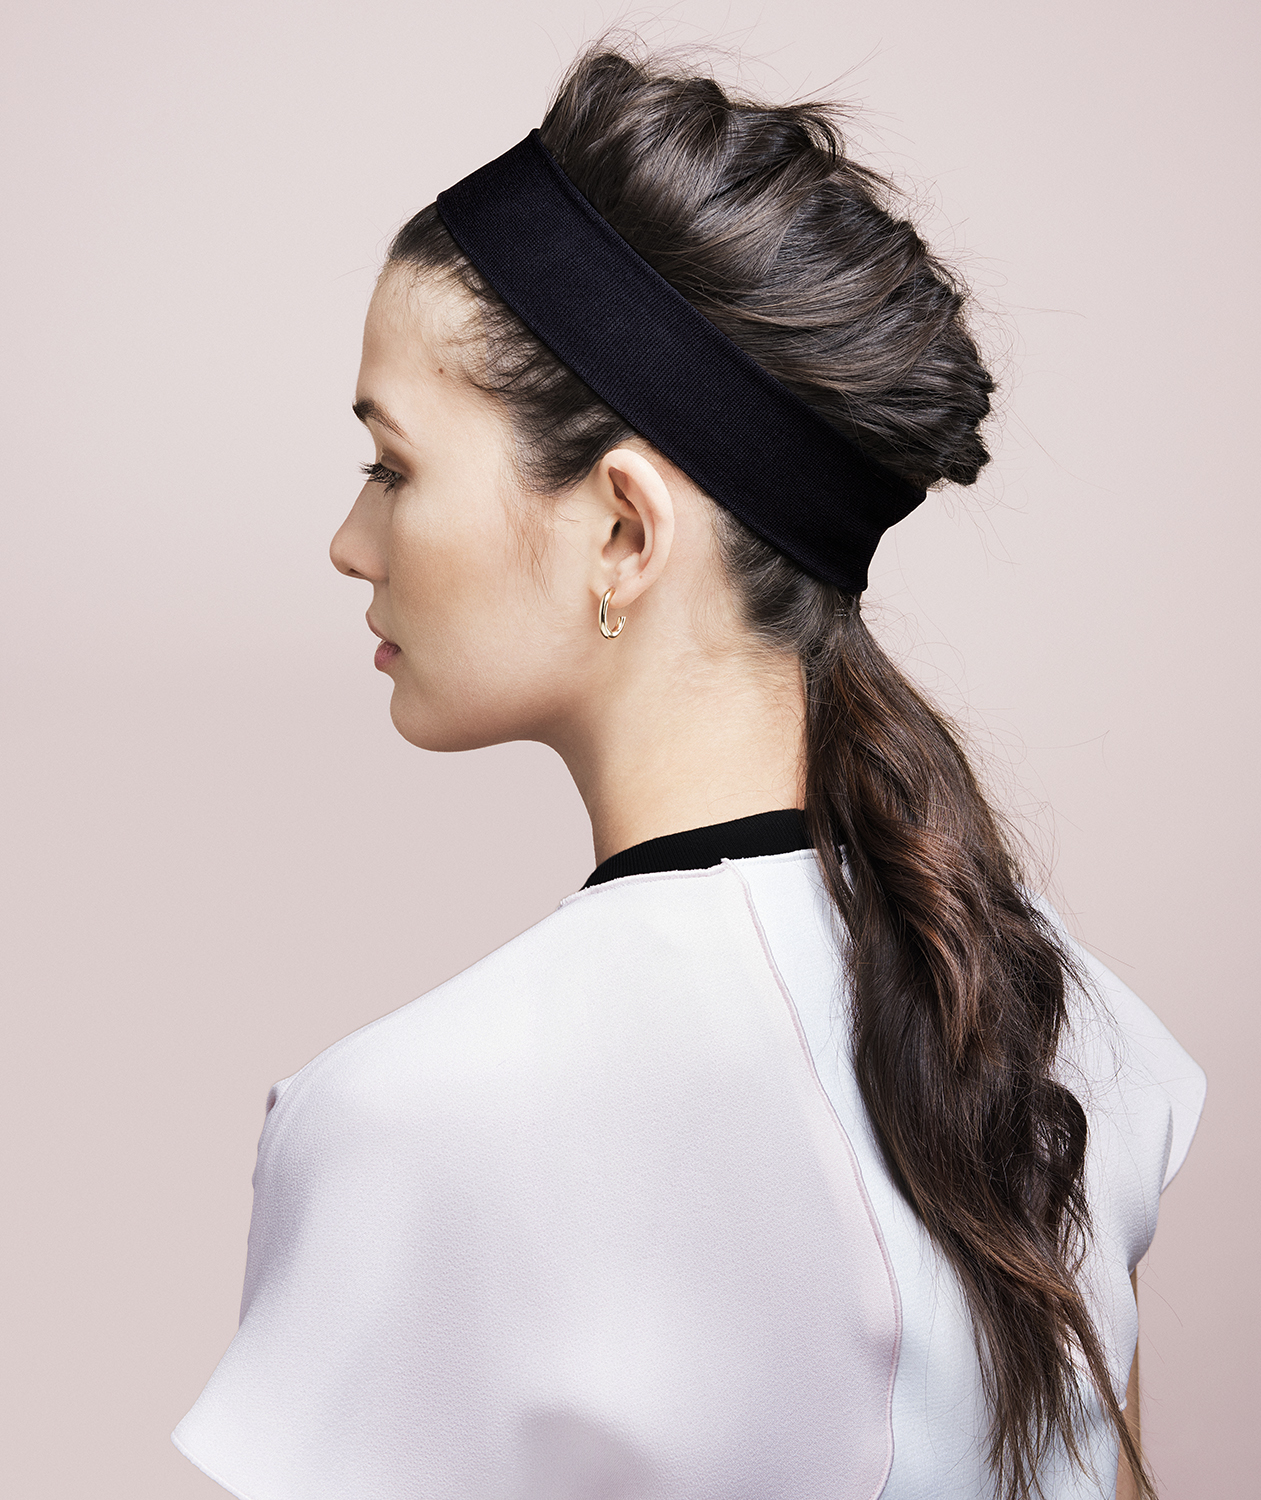 Model with french braid